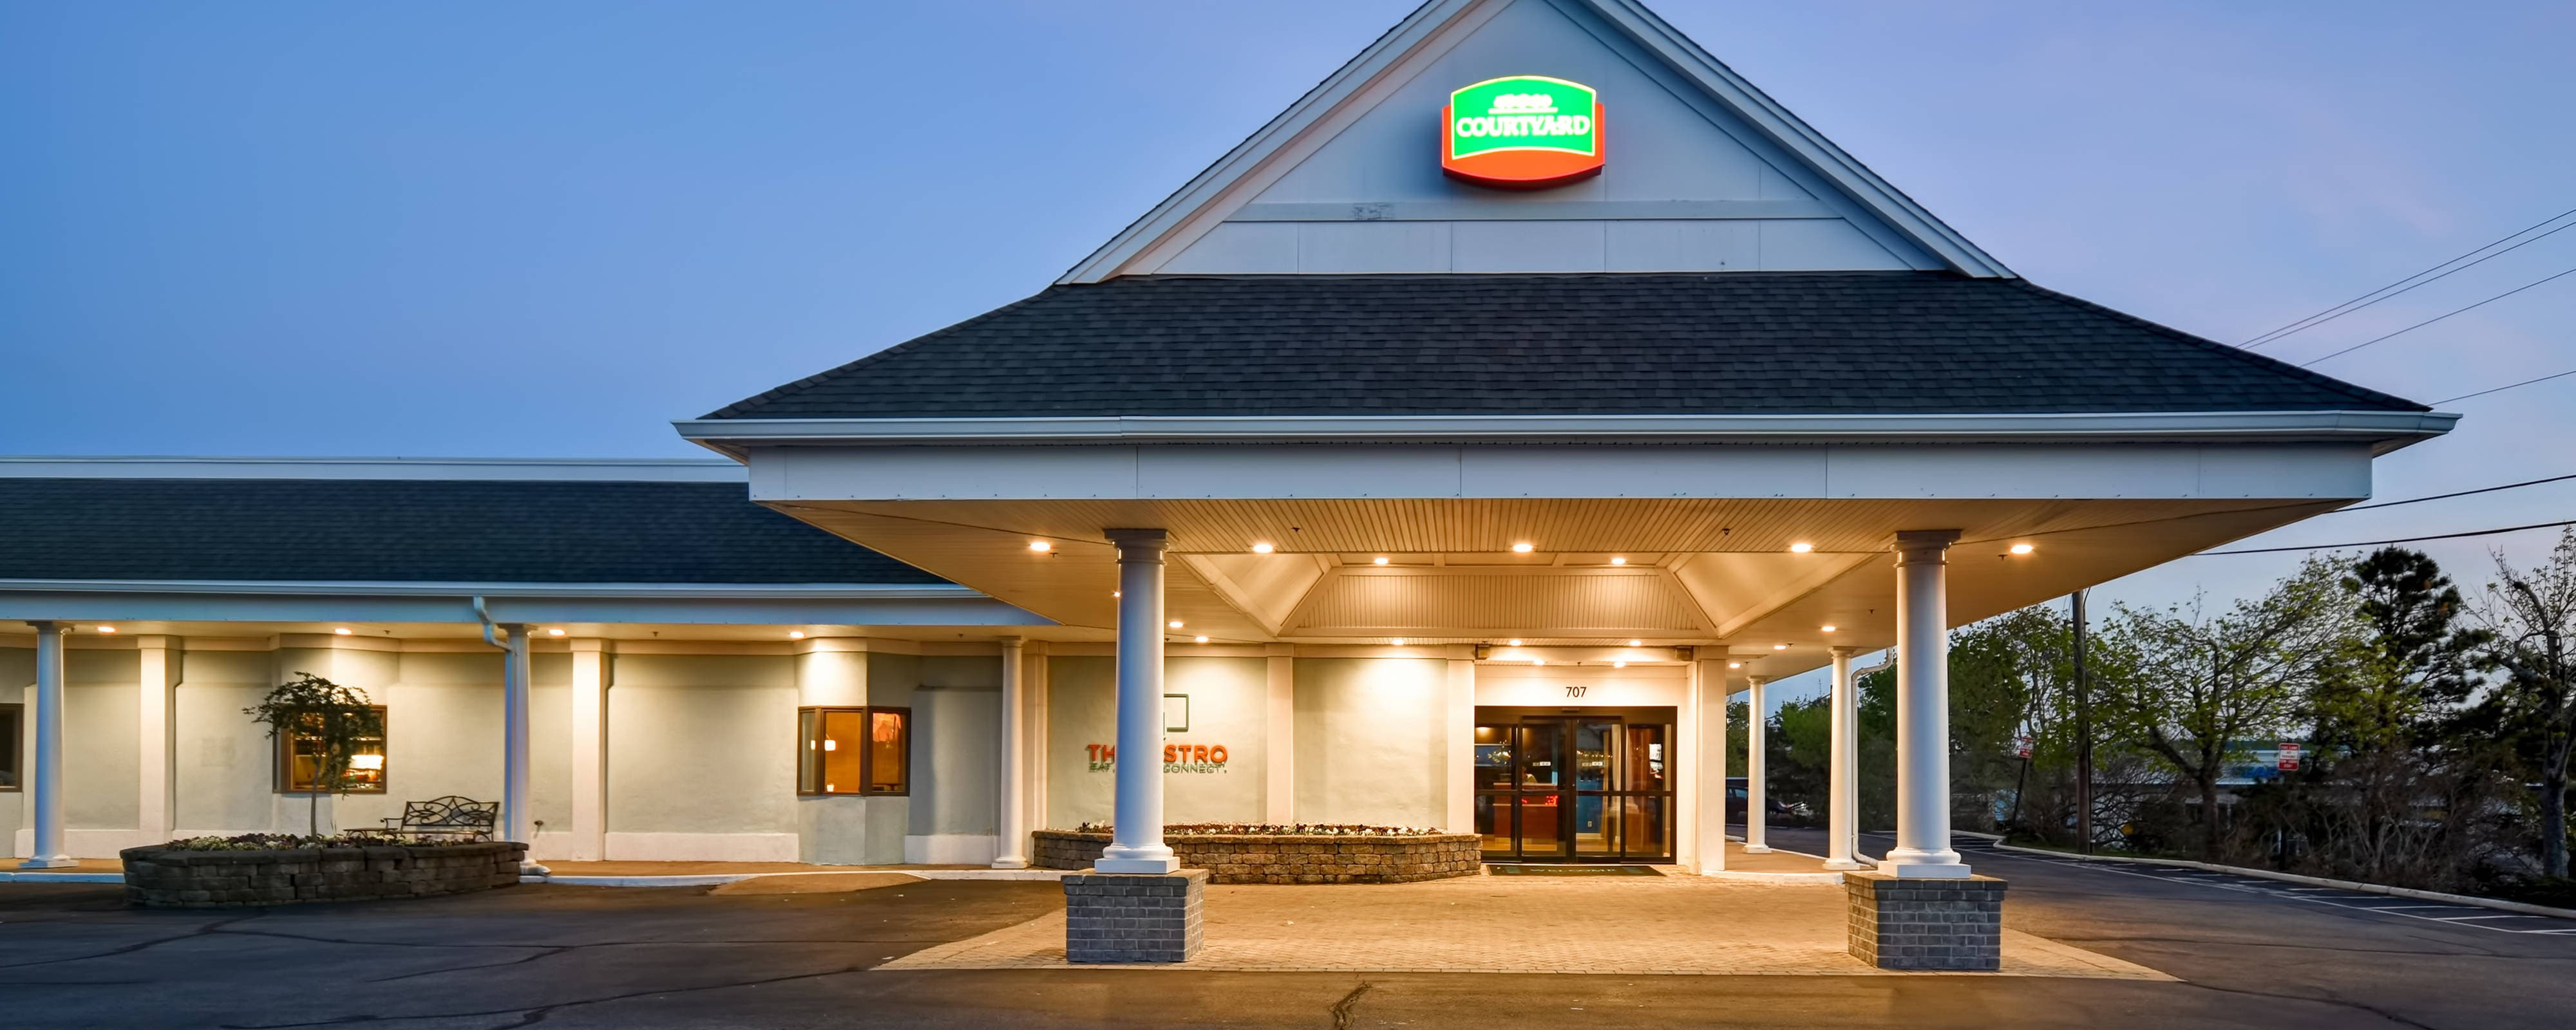 Cape Cod Hotels >> Courtyard Cape Cod Hyannis Located In The Heart Of Cape Cod